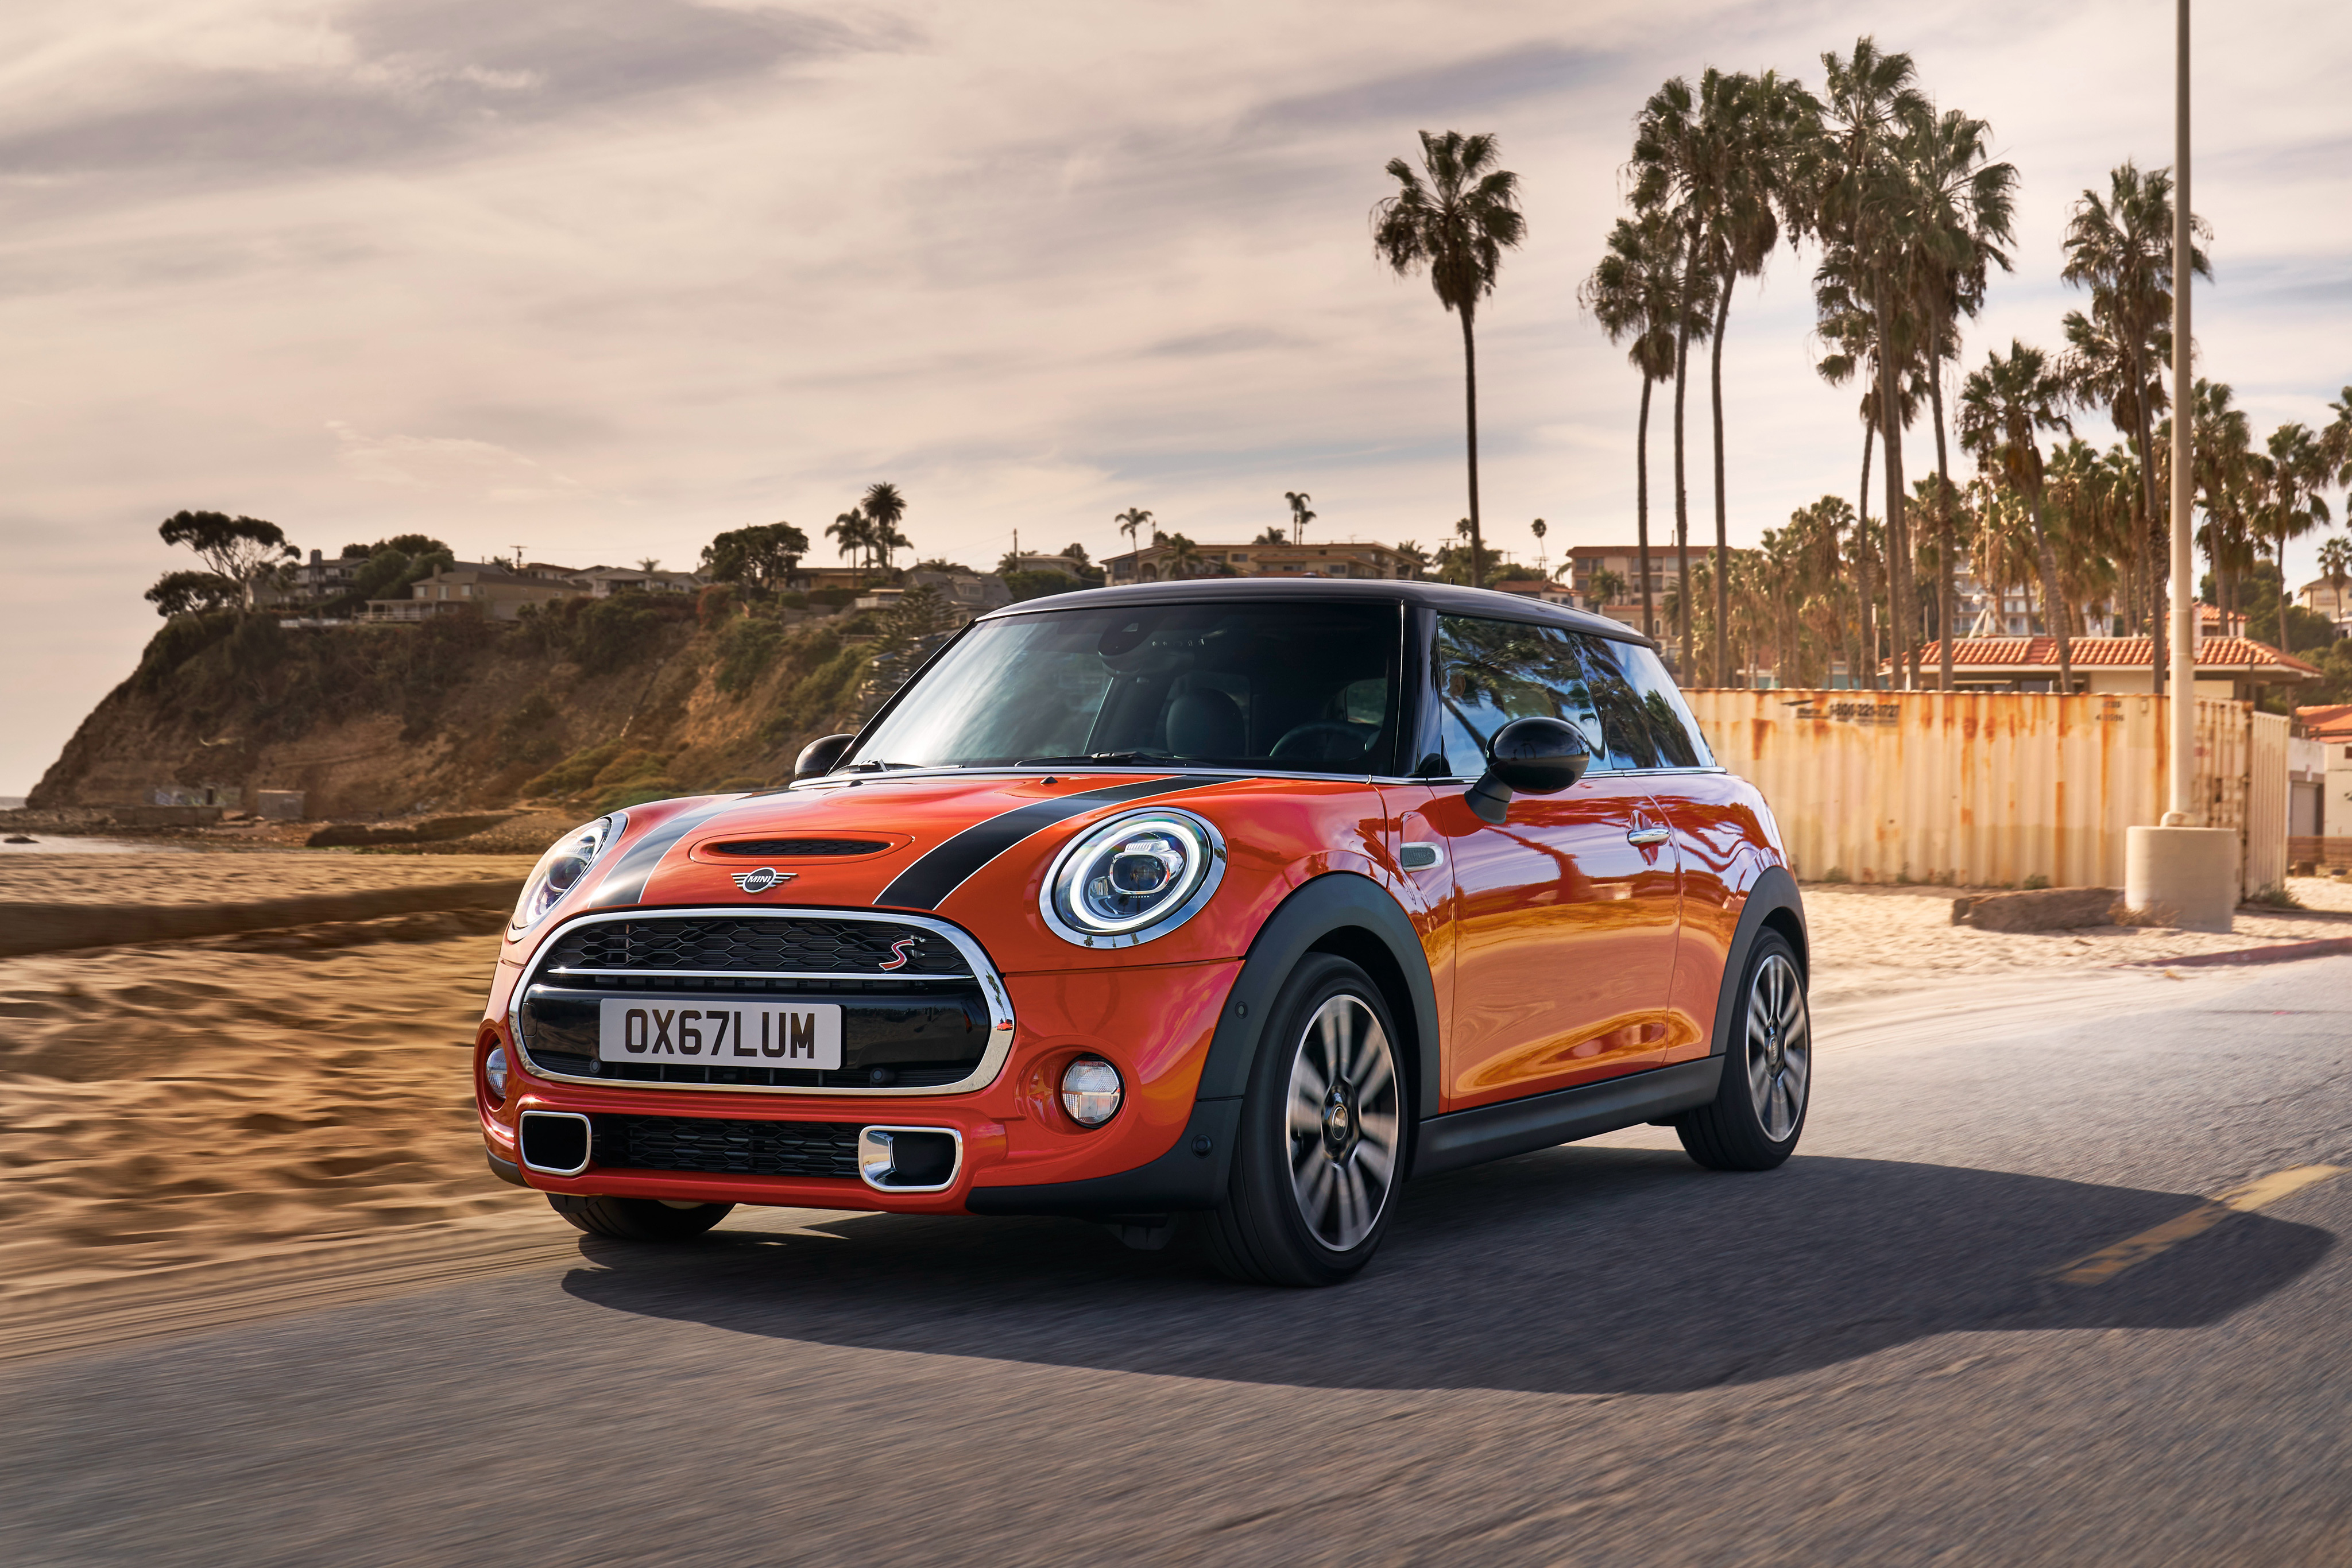 2018 Mini Cooper S Hd Cars 4k Wallpapers Images